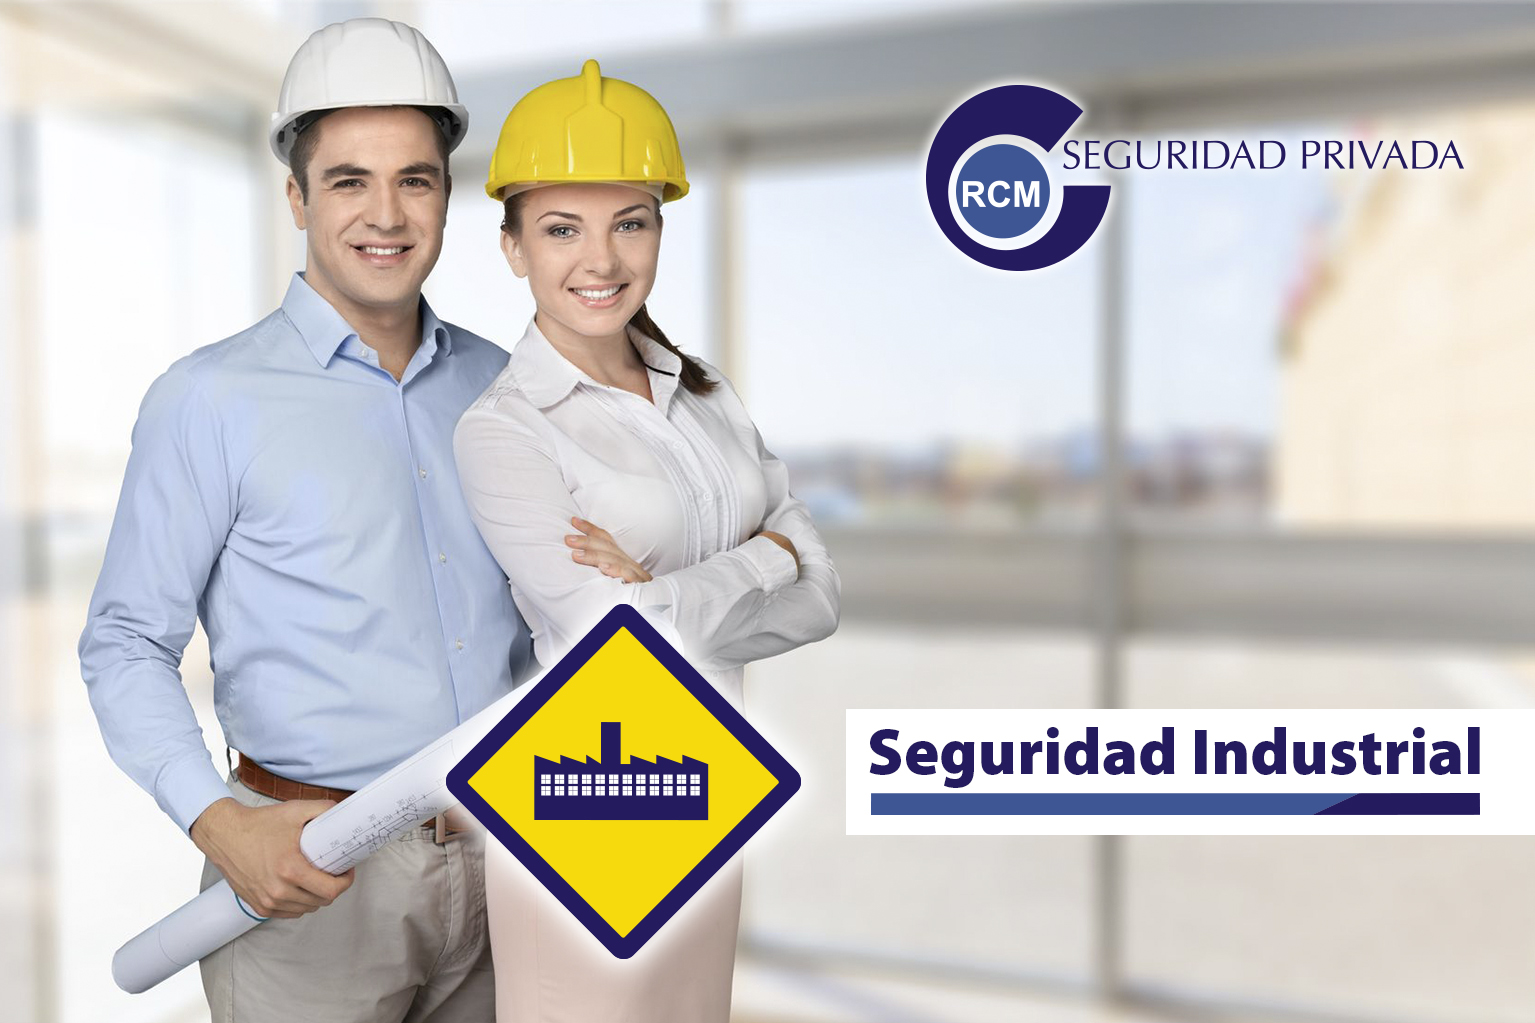 SEGURIDAD PRIVADA MEXICO INDUSTRIAL